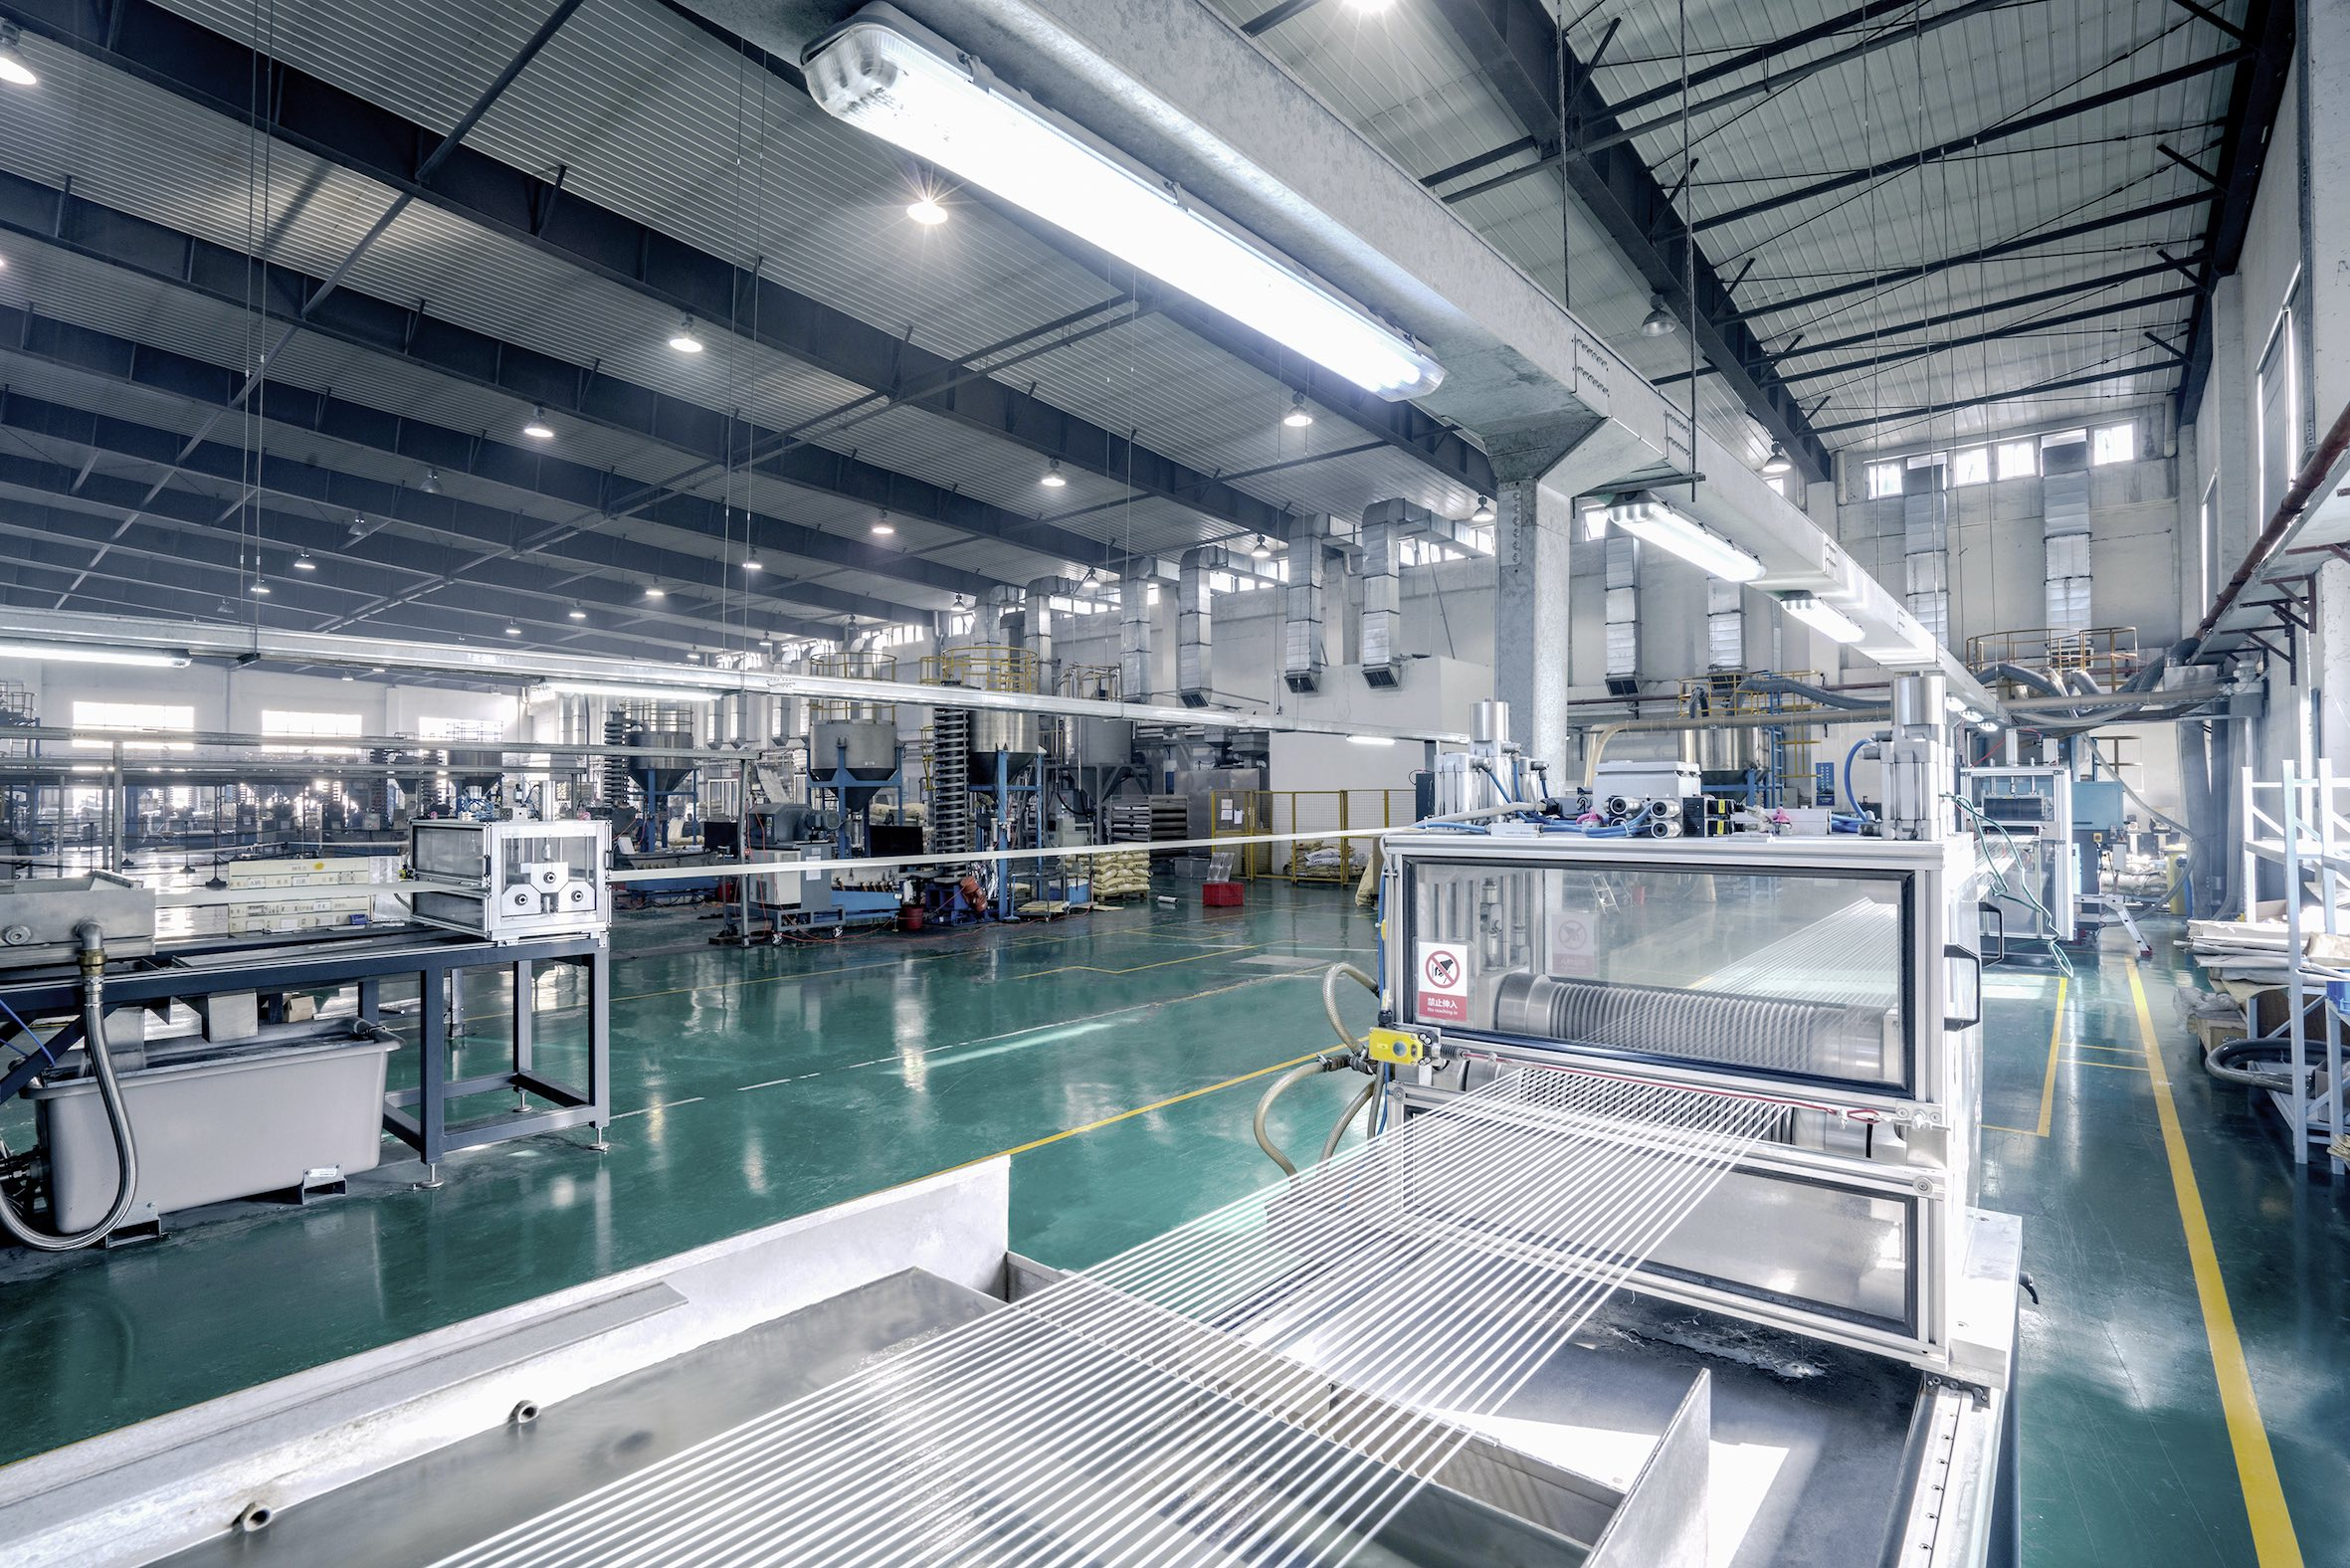 In 2017, Sunway purchased its first 32 strand LFT pultrusion line from ProTec, while a second unit with 64 strands followed in 2019 (Source: ProTec)